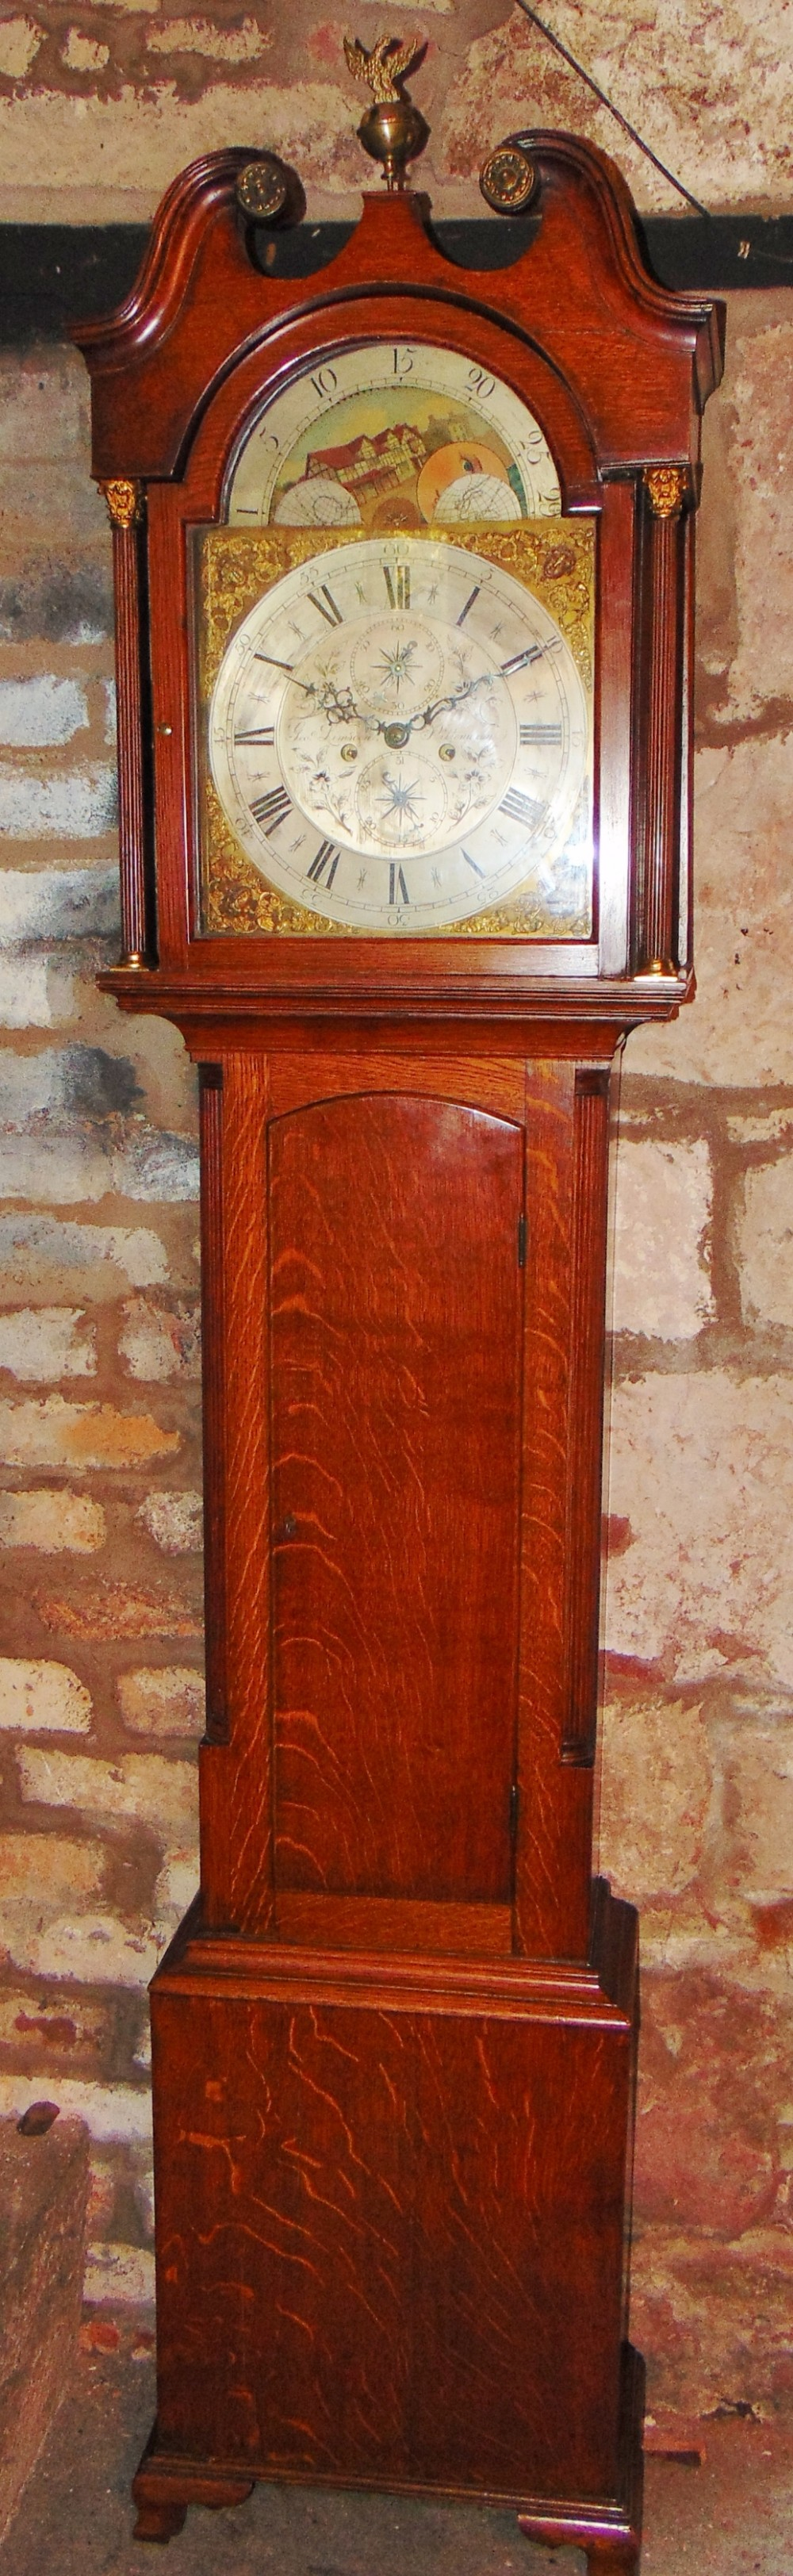 scottish georgian oak longcase clock circa 1780